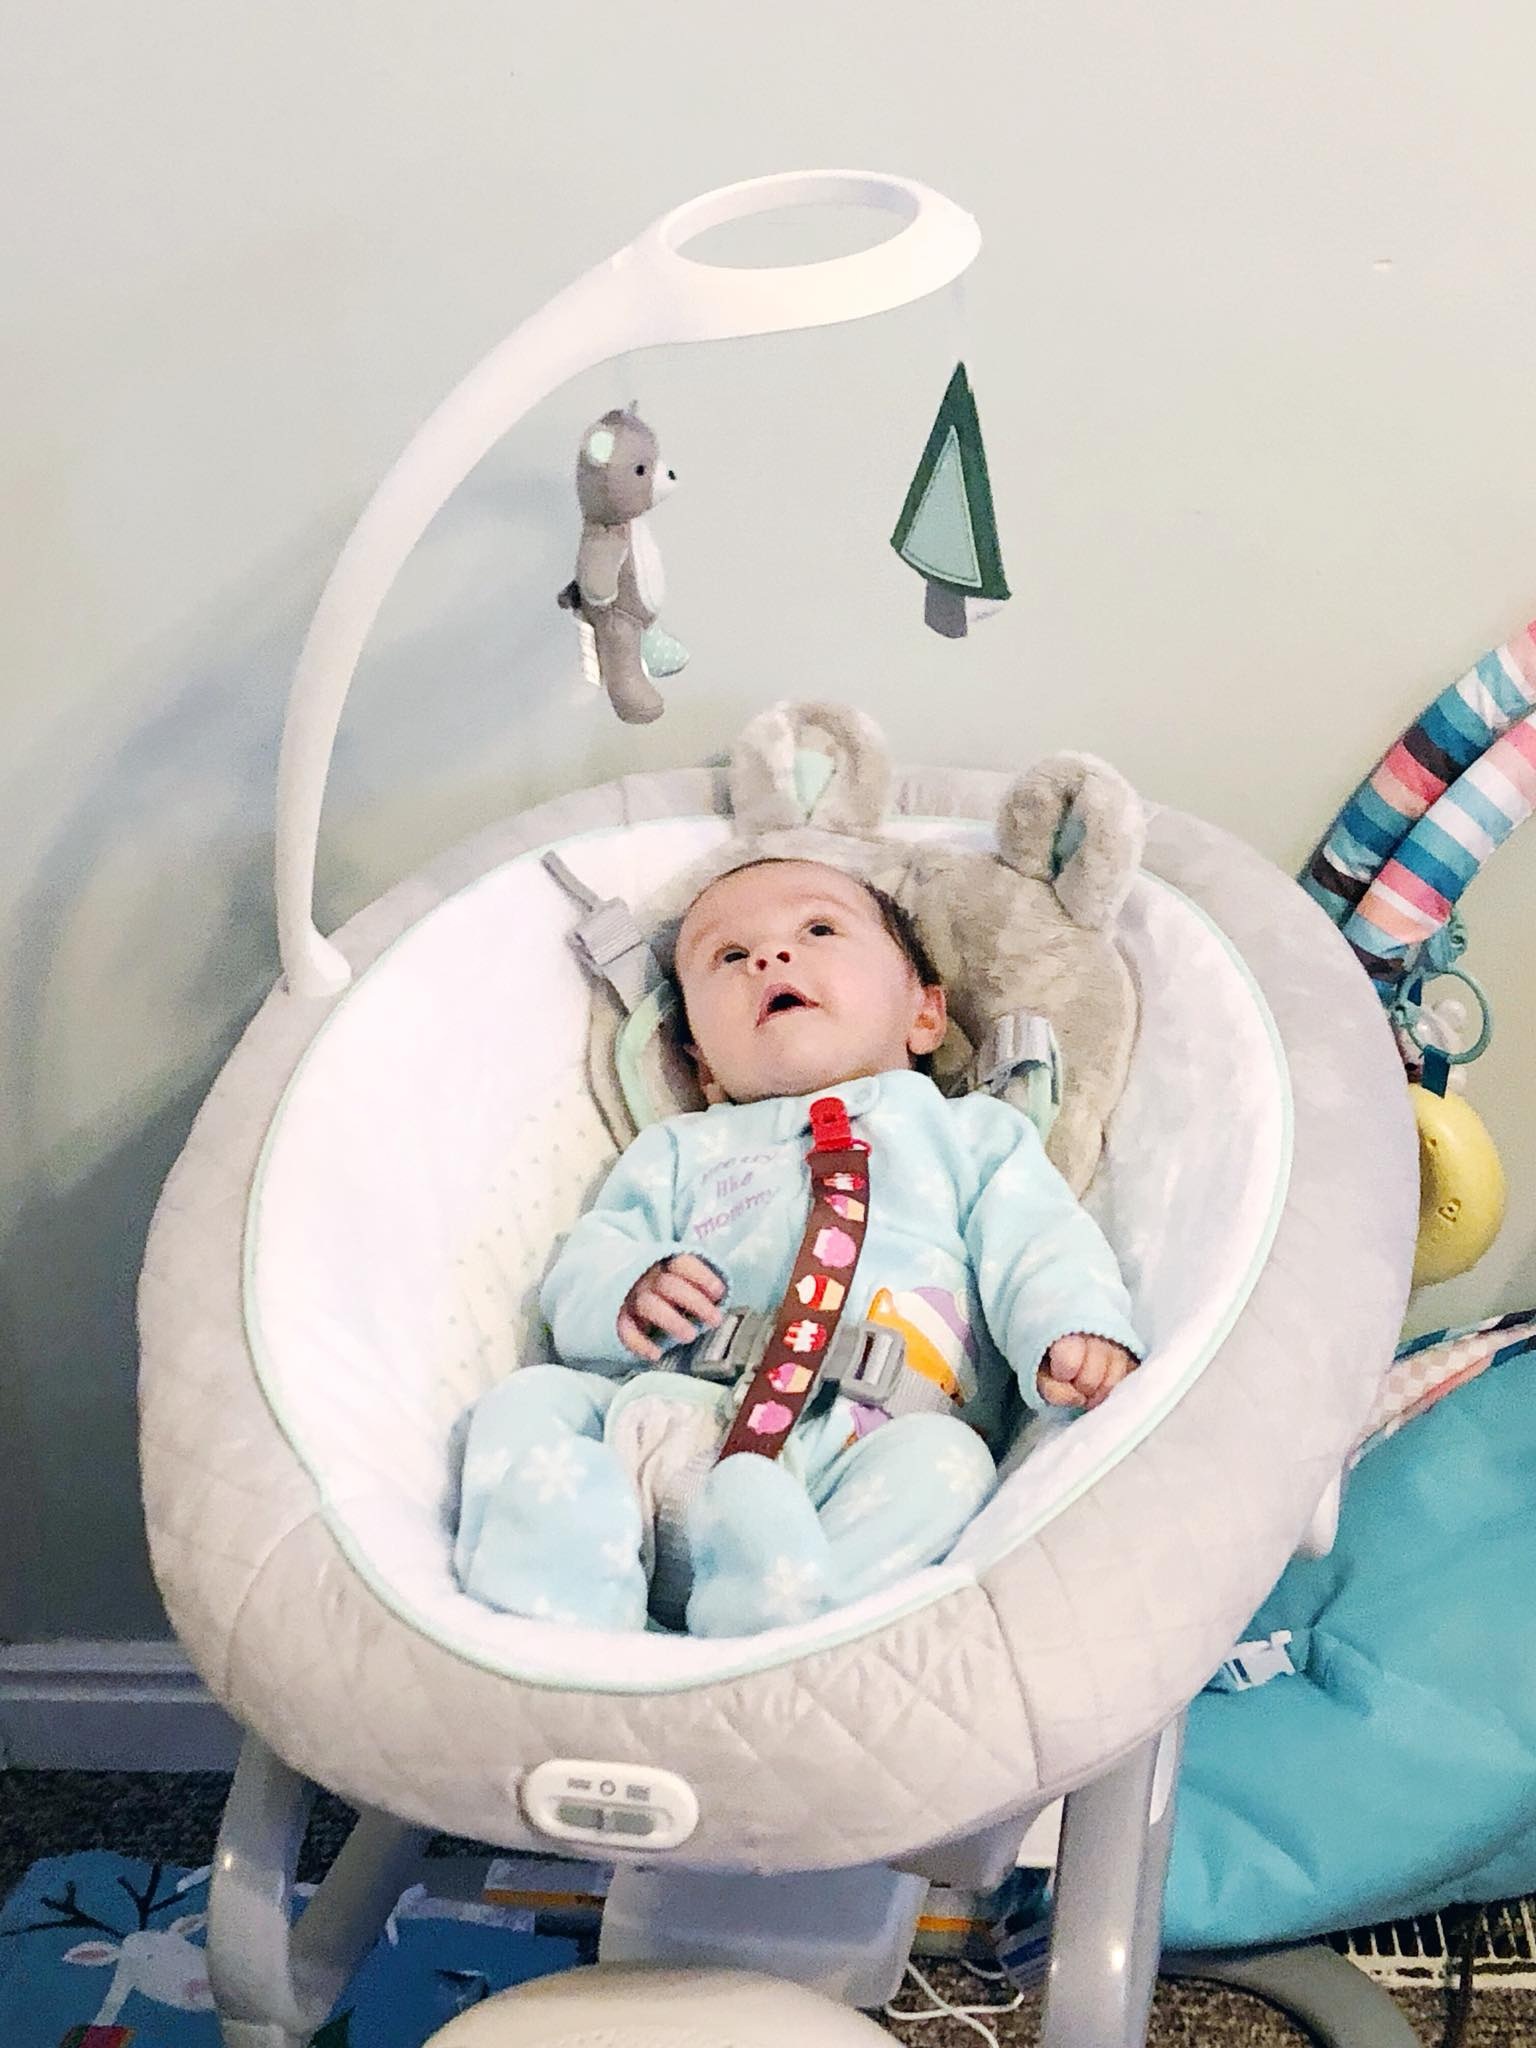 Baby girl admiring the toys hanging from her Graco Everyway Soother Baby Swing